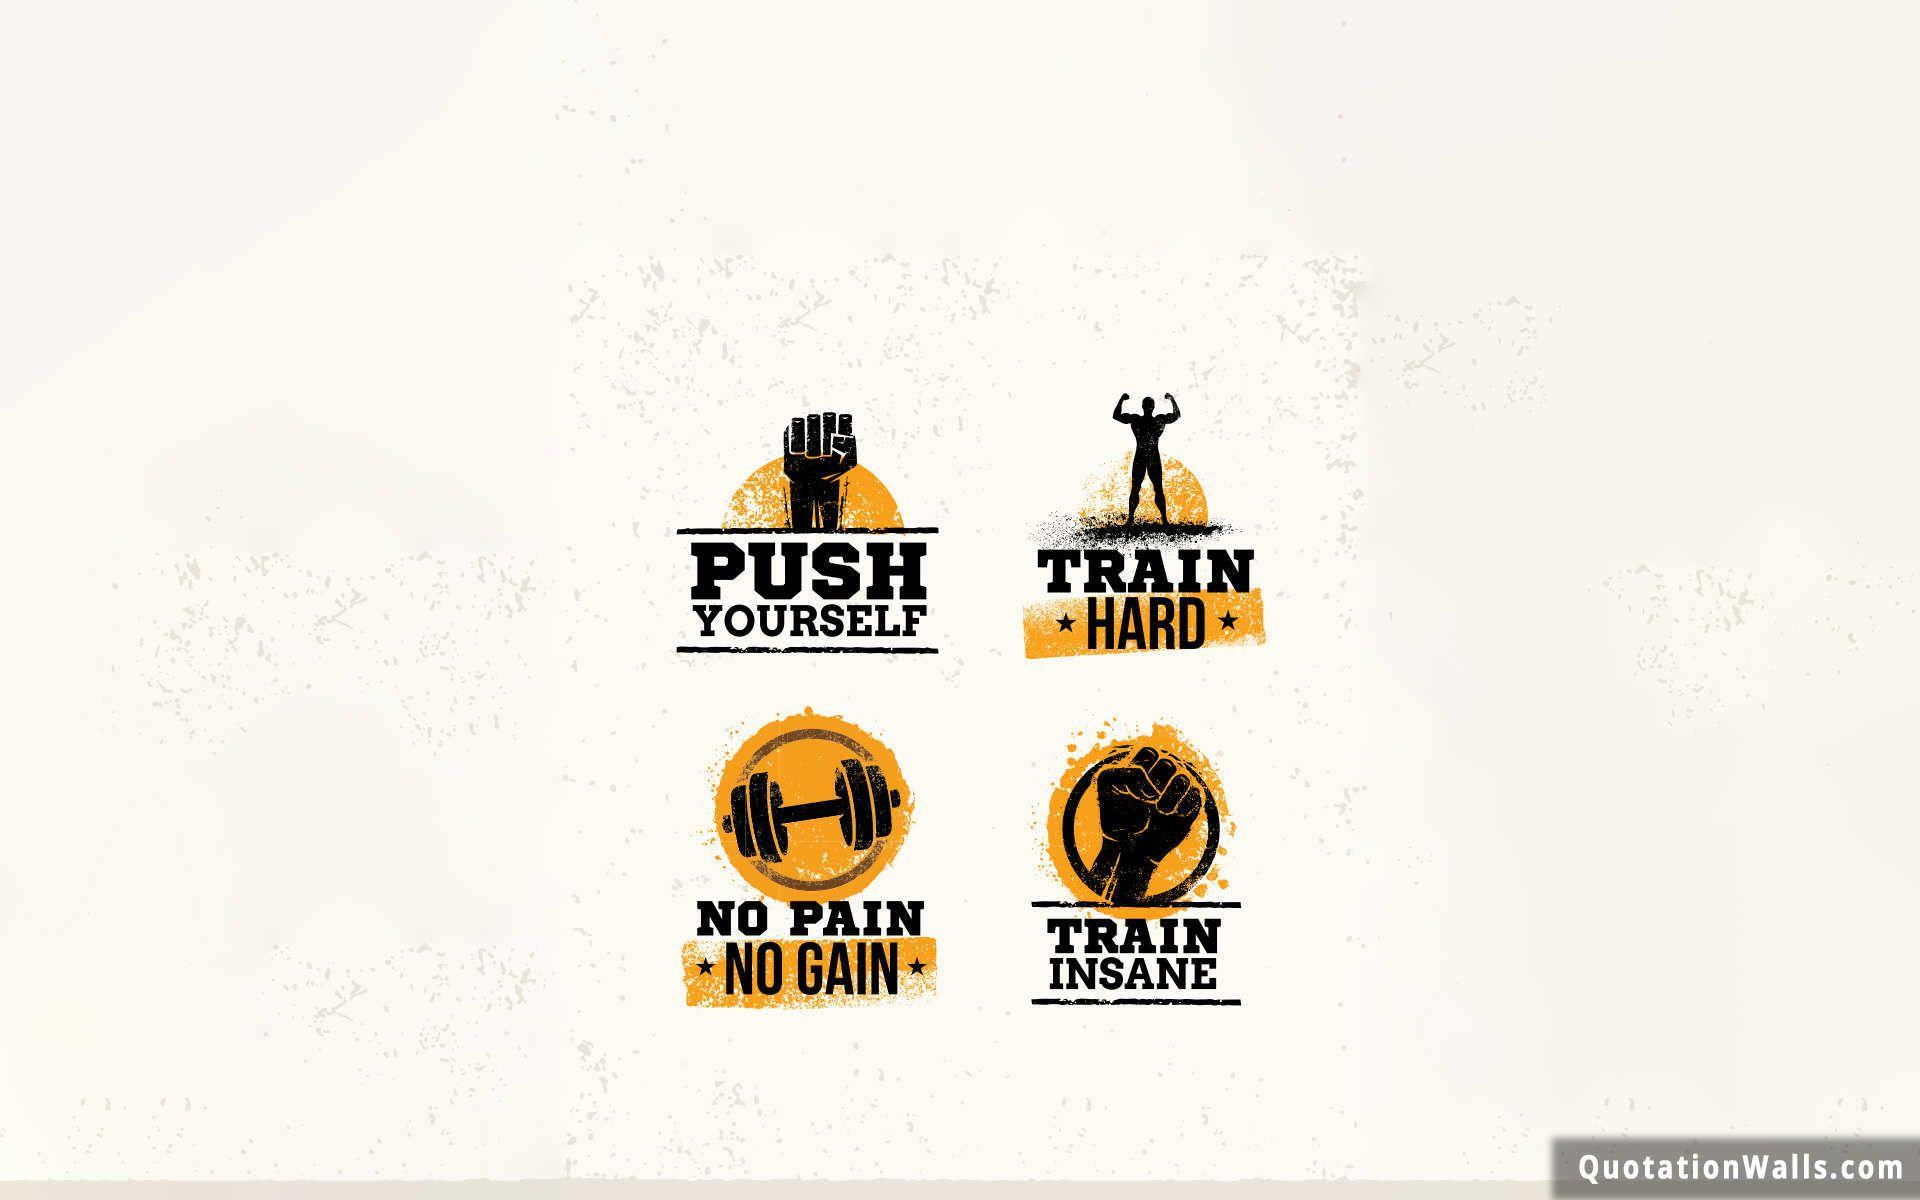 Gym Quotes Motivational Wallpaper For Desktop   QuotationWalls